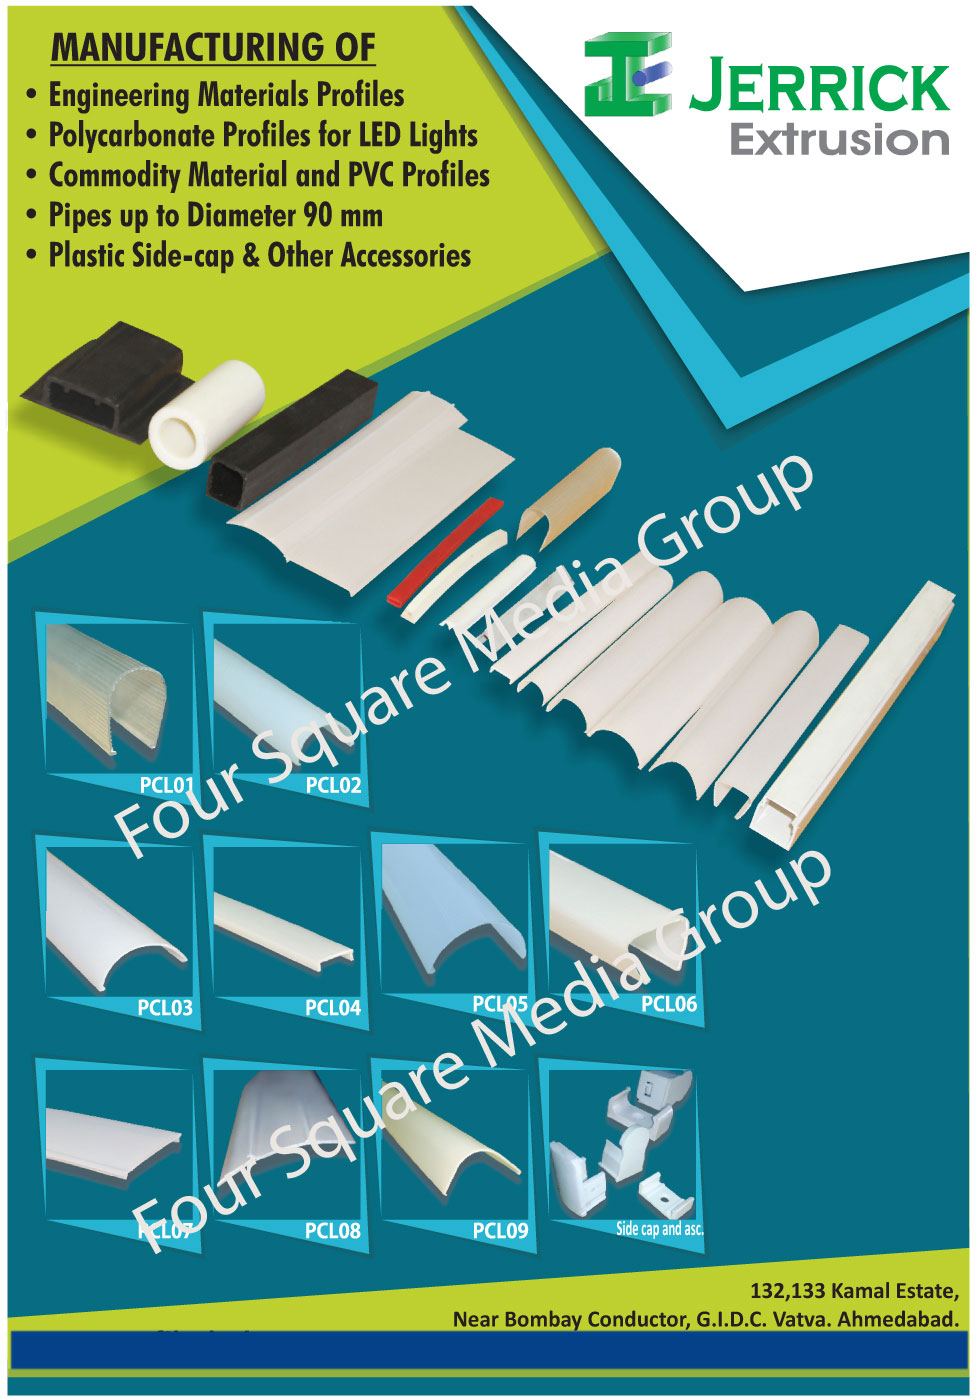 Engineering Material Profiles, Led Light Polycarbonate Profile, Commodity Materials, PVC Profiles, Plastic Pipes, Plastic Side Caps, Tube Light Housing Accessories